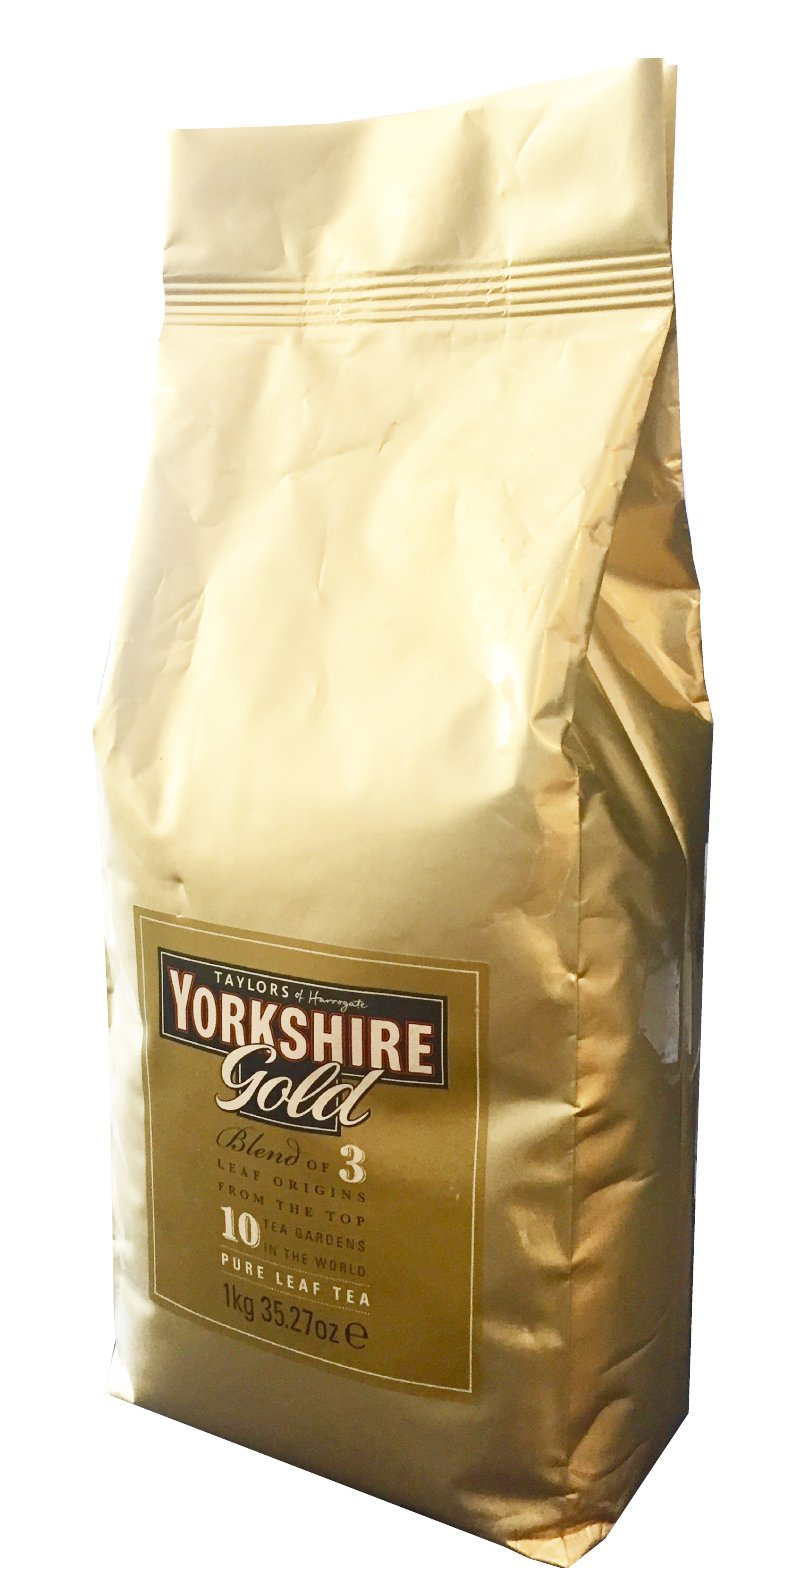 Taylors of Harrogate Yorkshire Gold Loose Leaf Tea, Kilo Bag, 35.27 Ounce (Pack of 1) by Yorkshire Tea